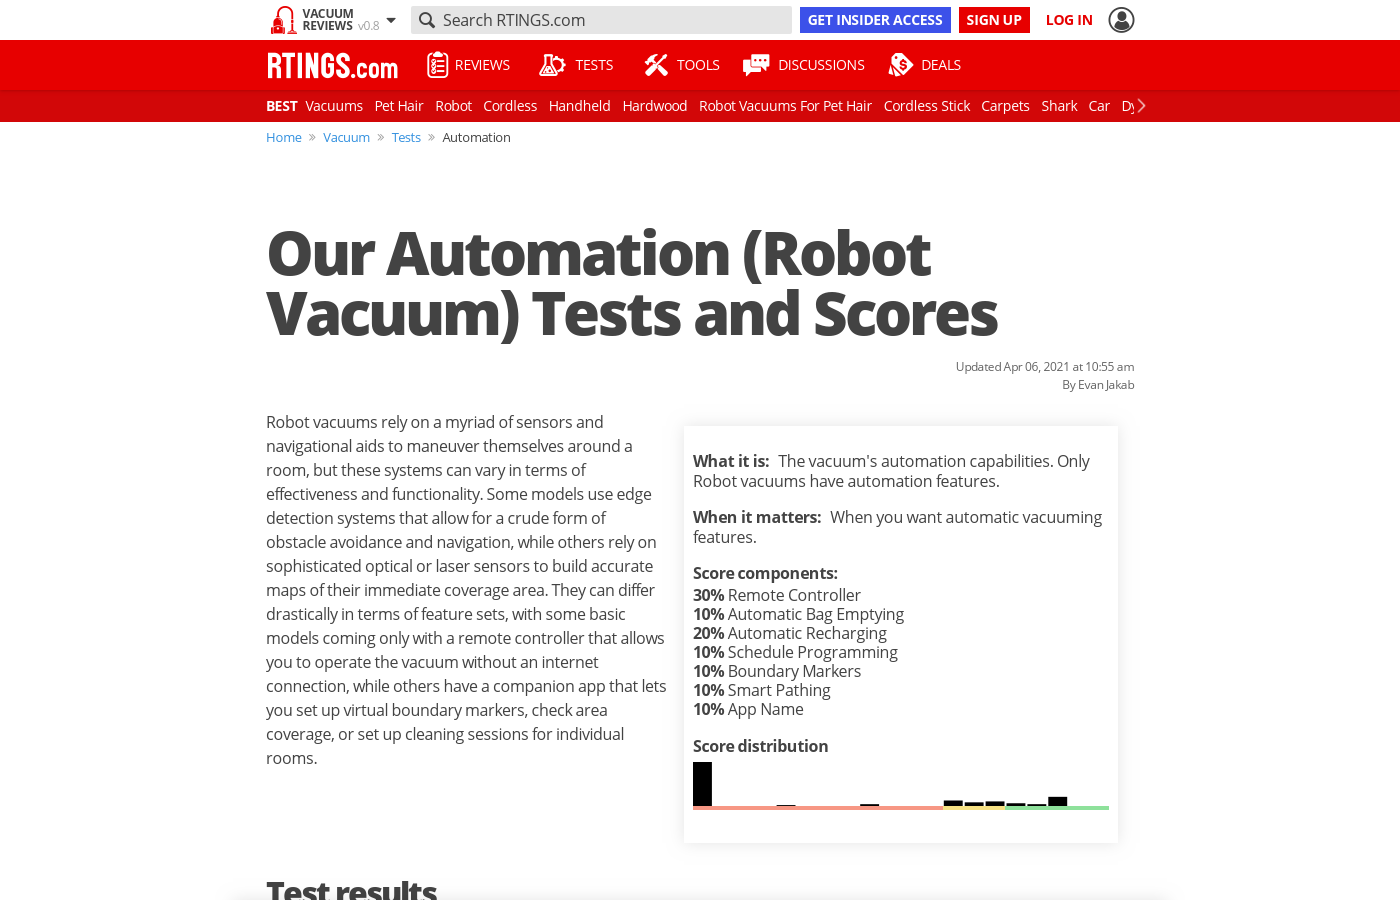 Our Automation (Robot Vacuum) Tests and Scores